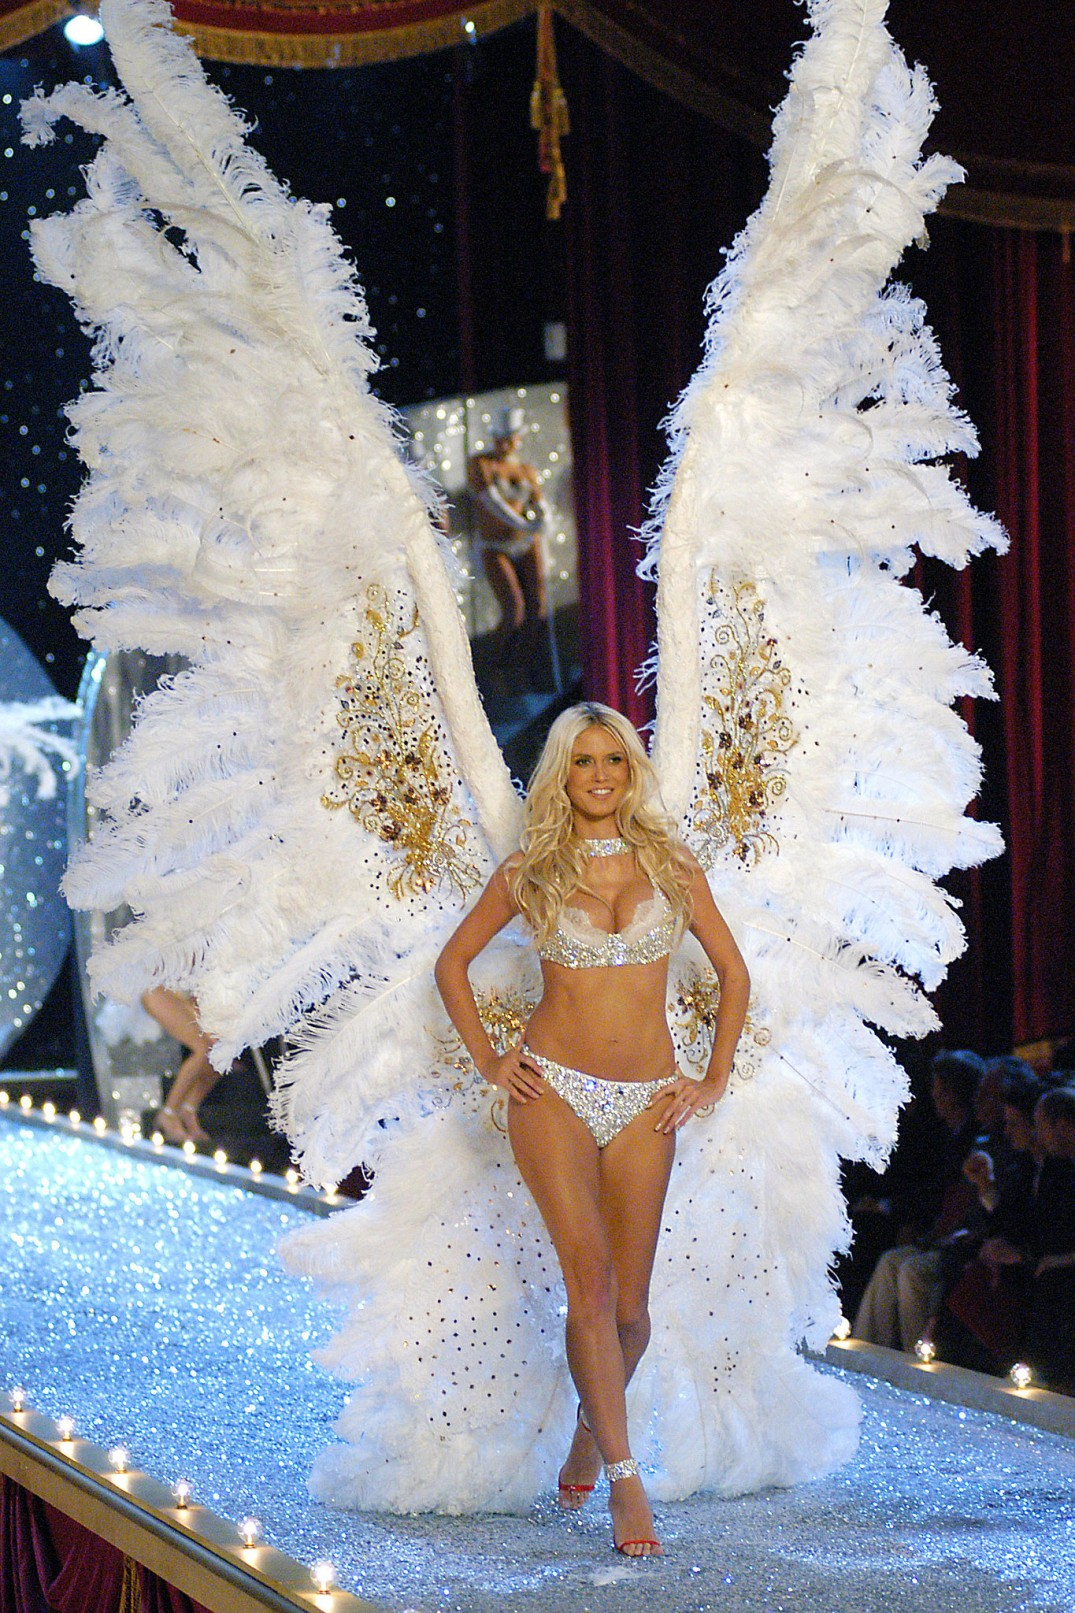 15 Things You Didn't Know About Victoria's Secret | Heidi Klum wearing the 12 feet high wings